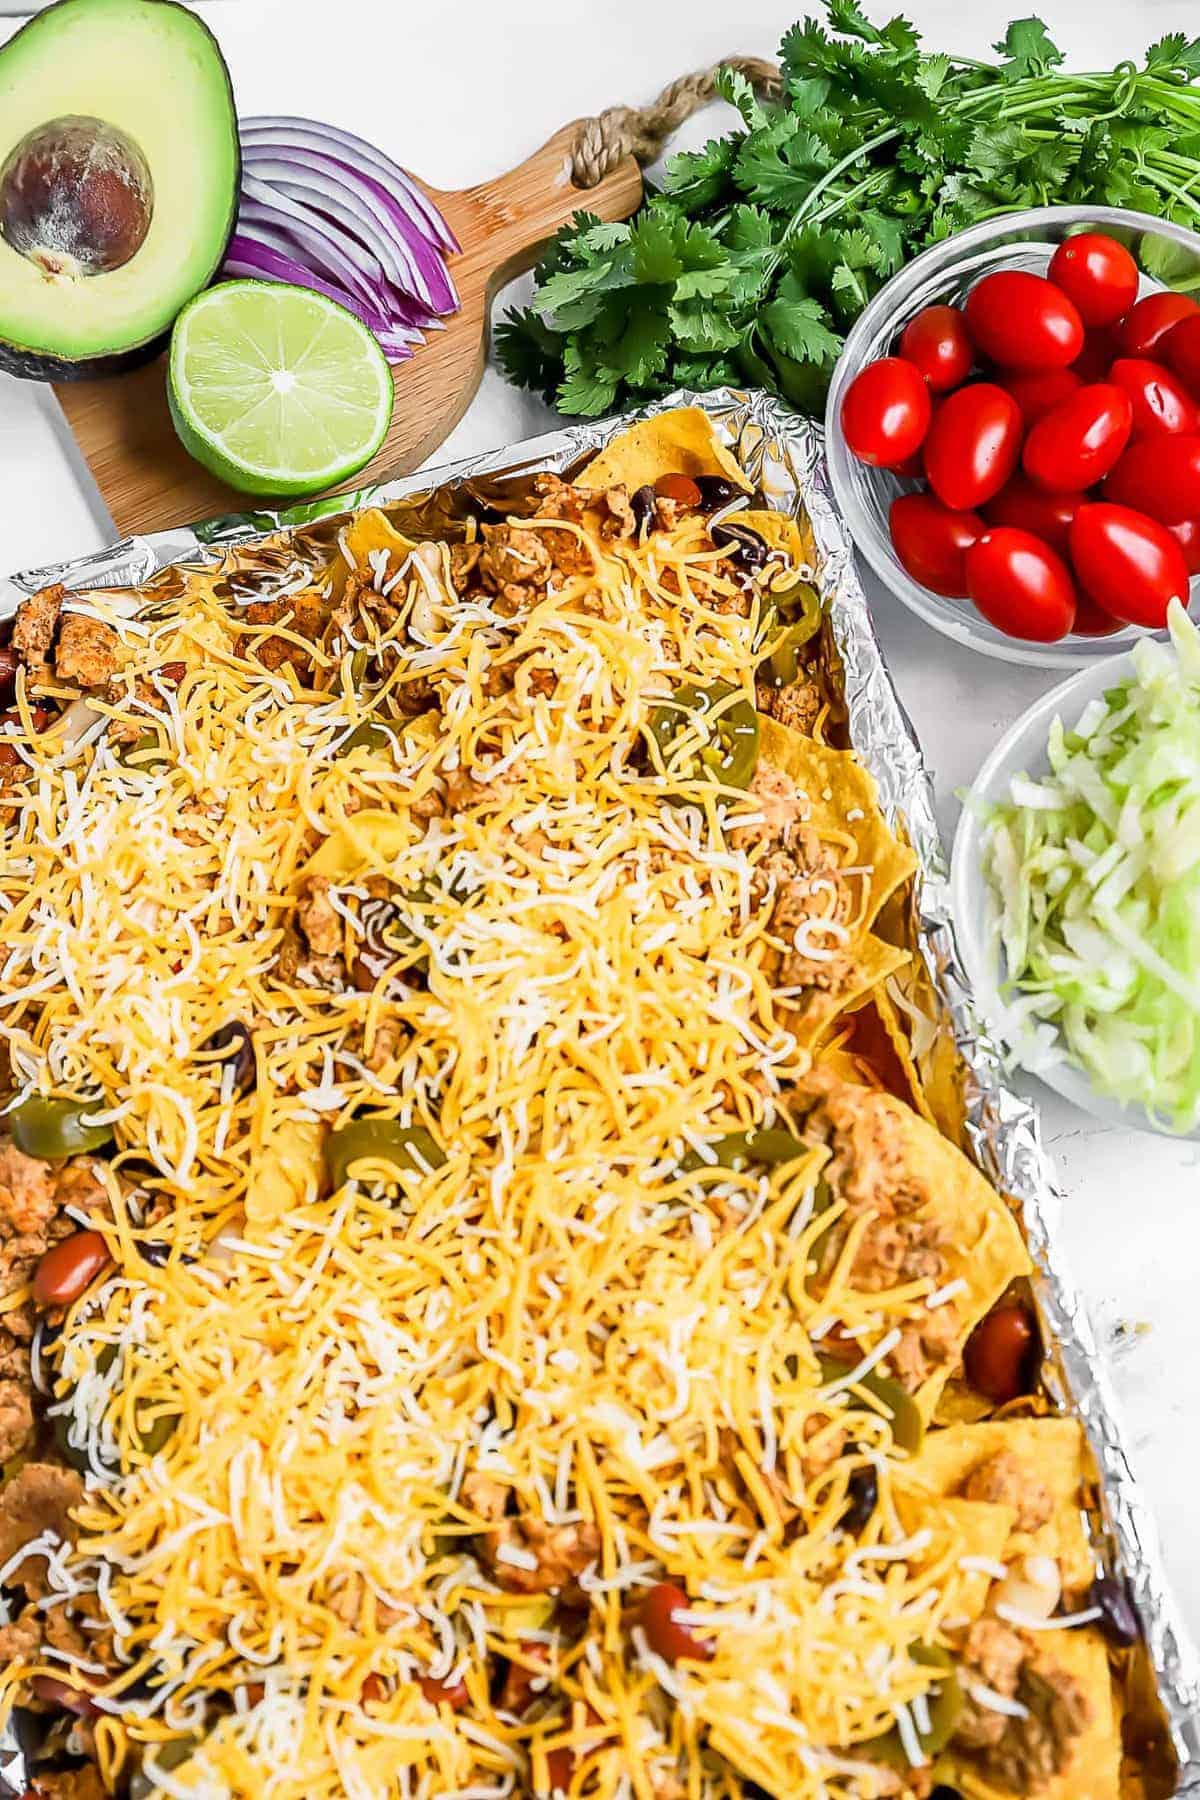 Nachos on a sheet pan before being cooked